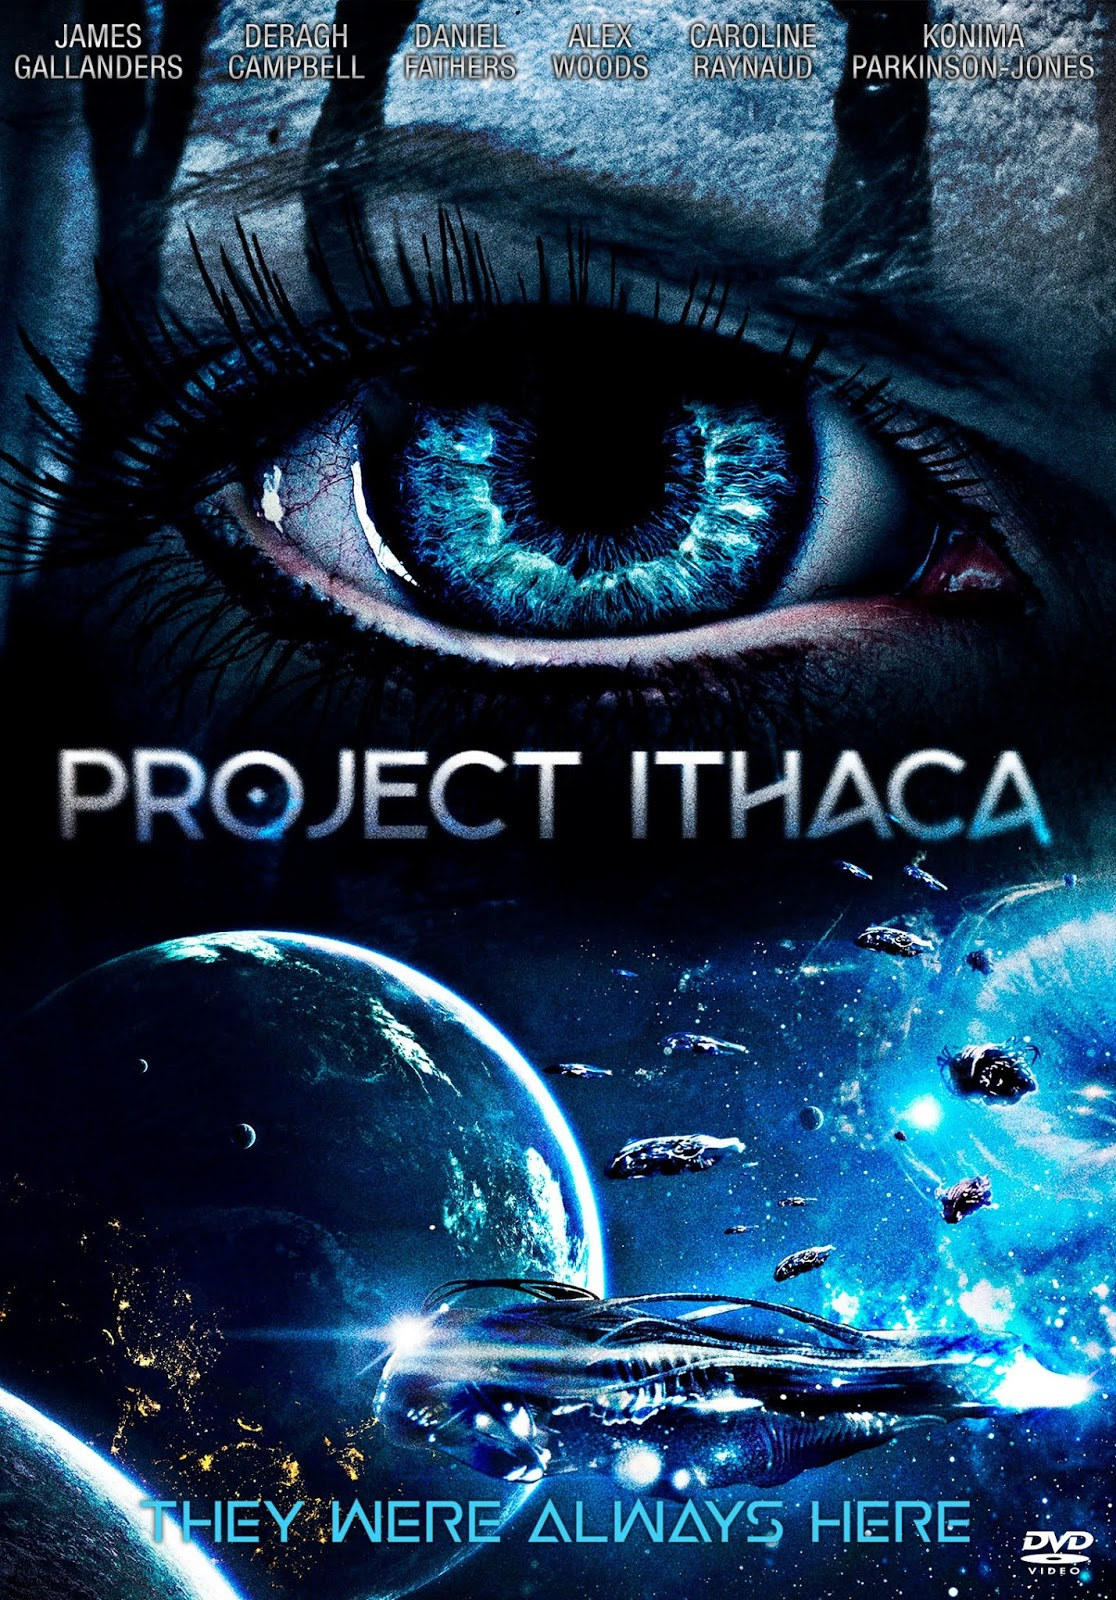 Project Ithaca [2019] [DVDR] [NTSC] [Latino]